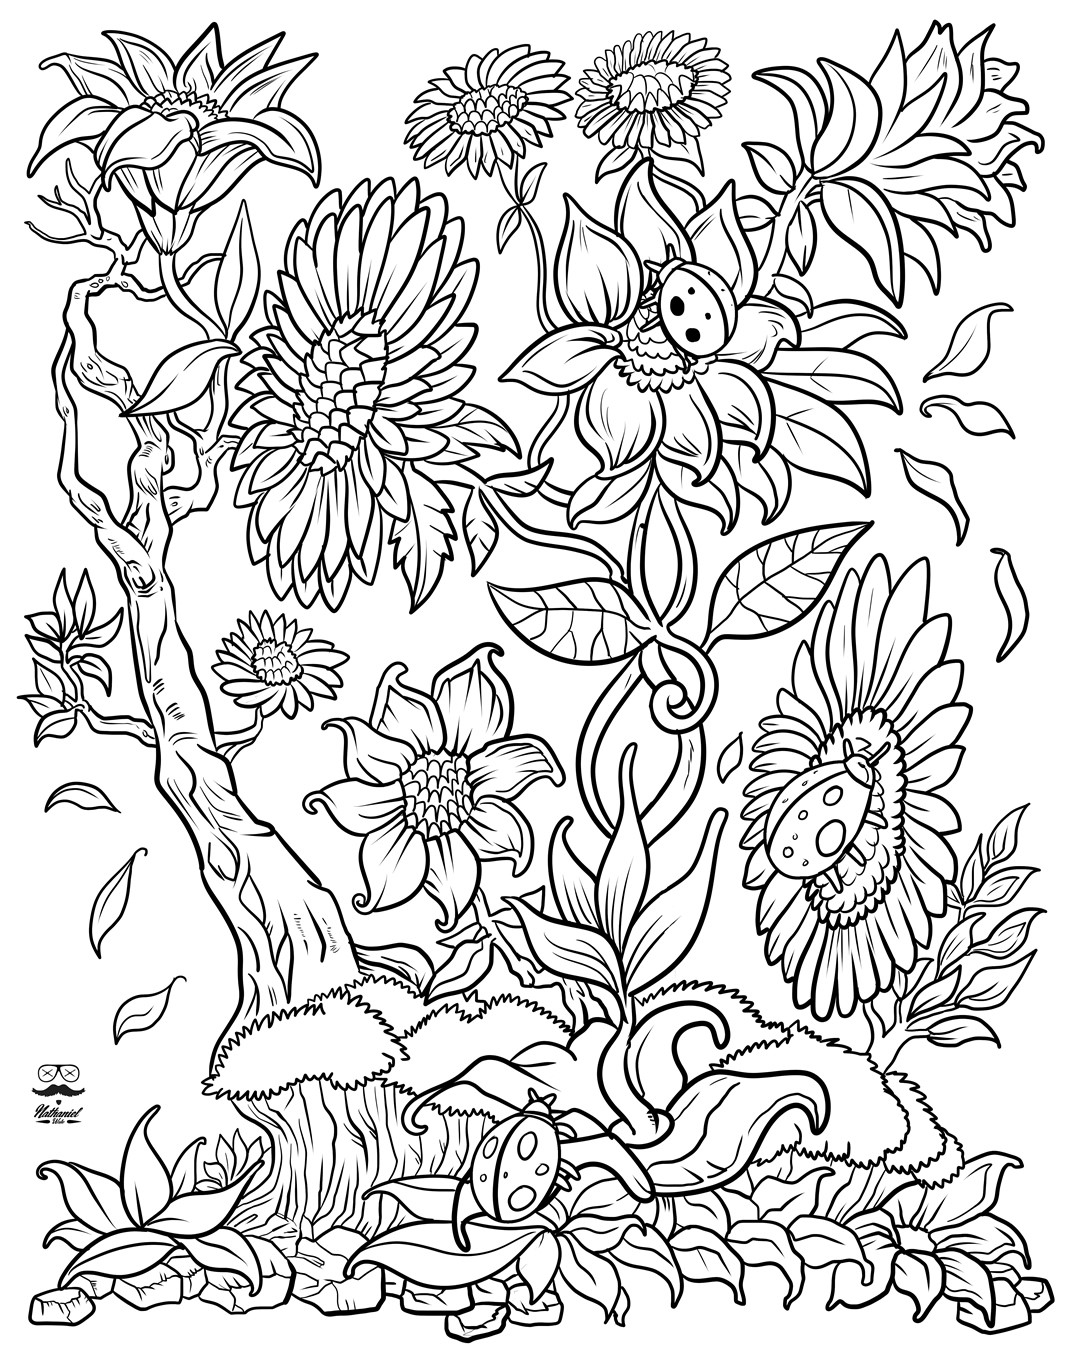 Ladybugs in the Flowers Coloring Page